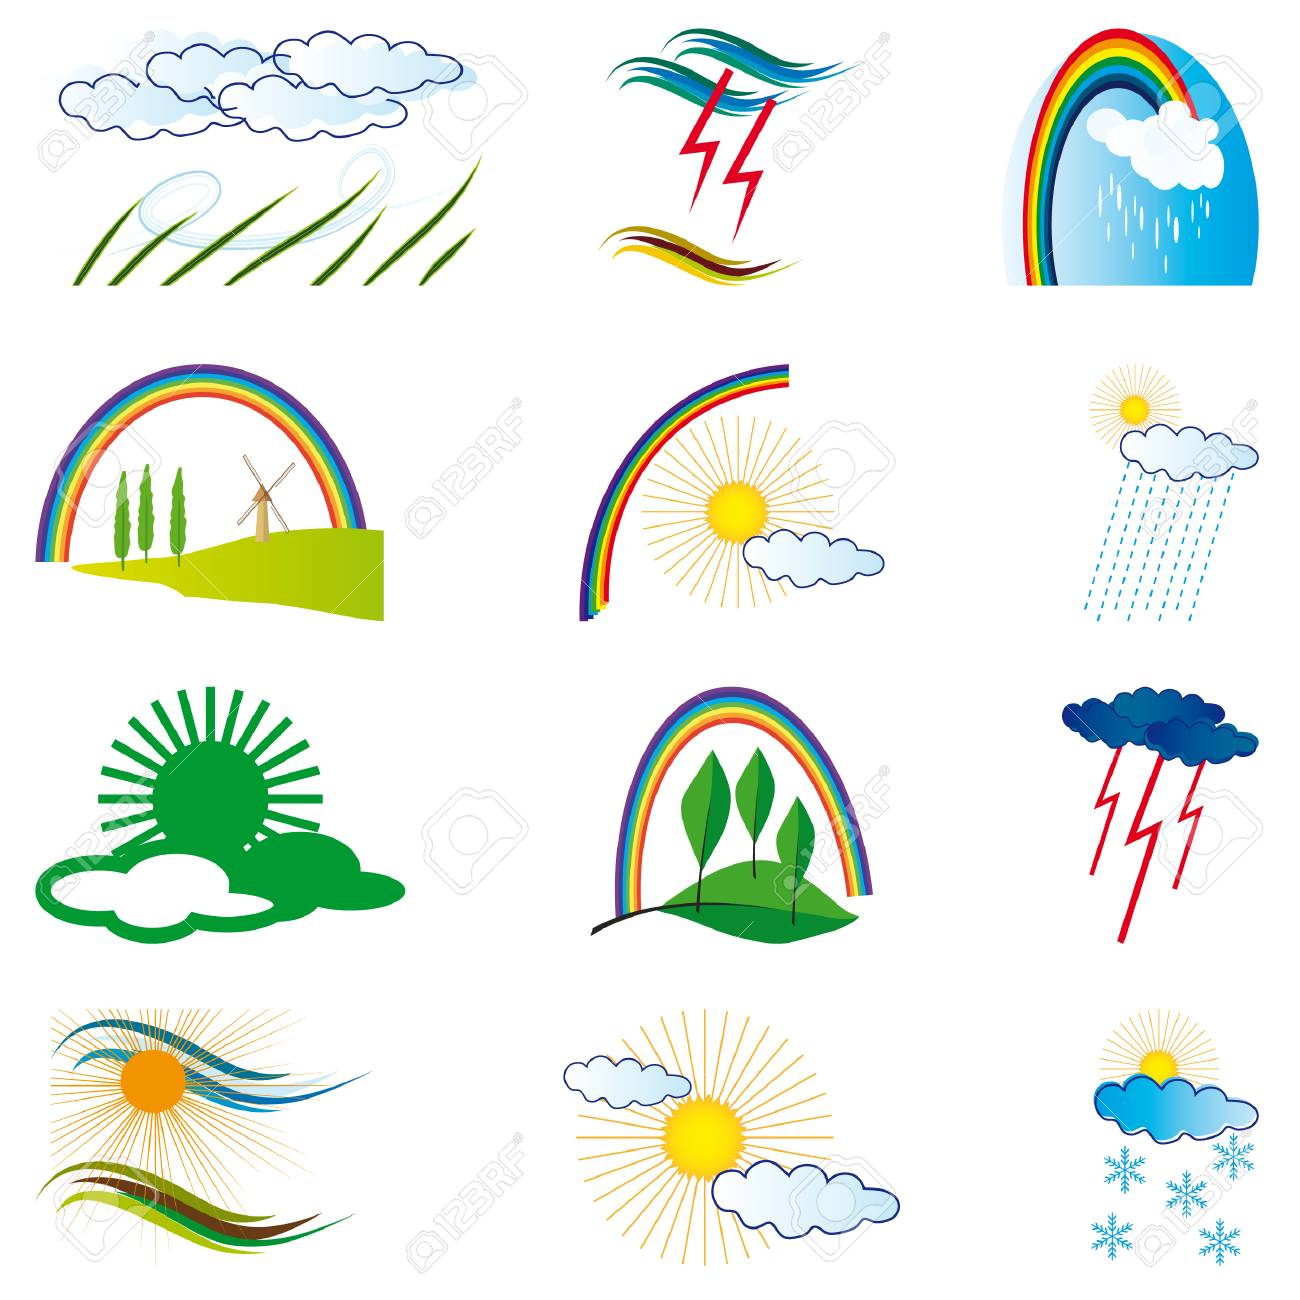 A collection of natural elements for design. Vector illustration Stock Vector - 9003558